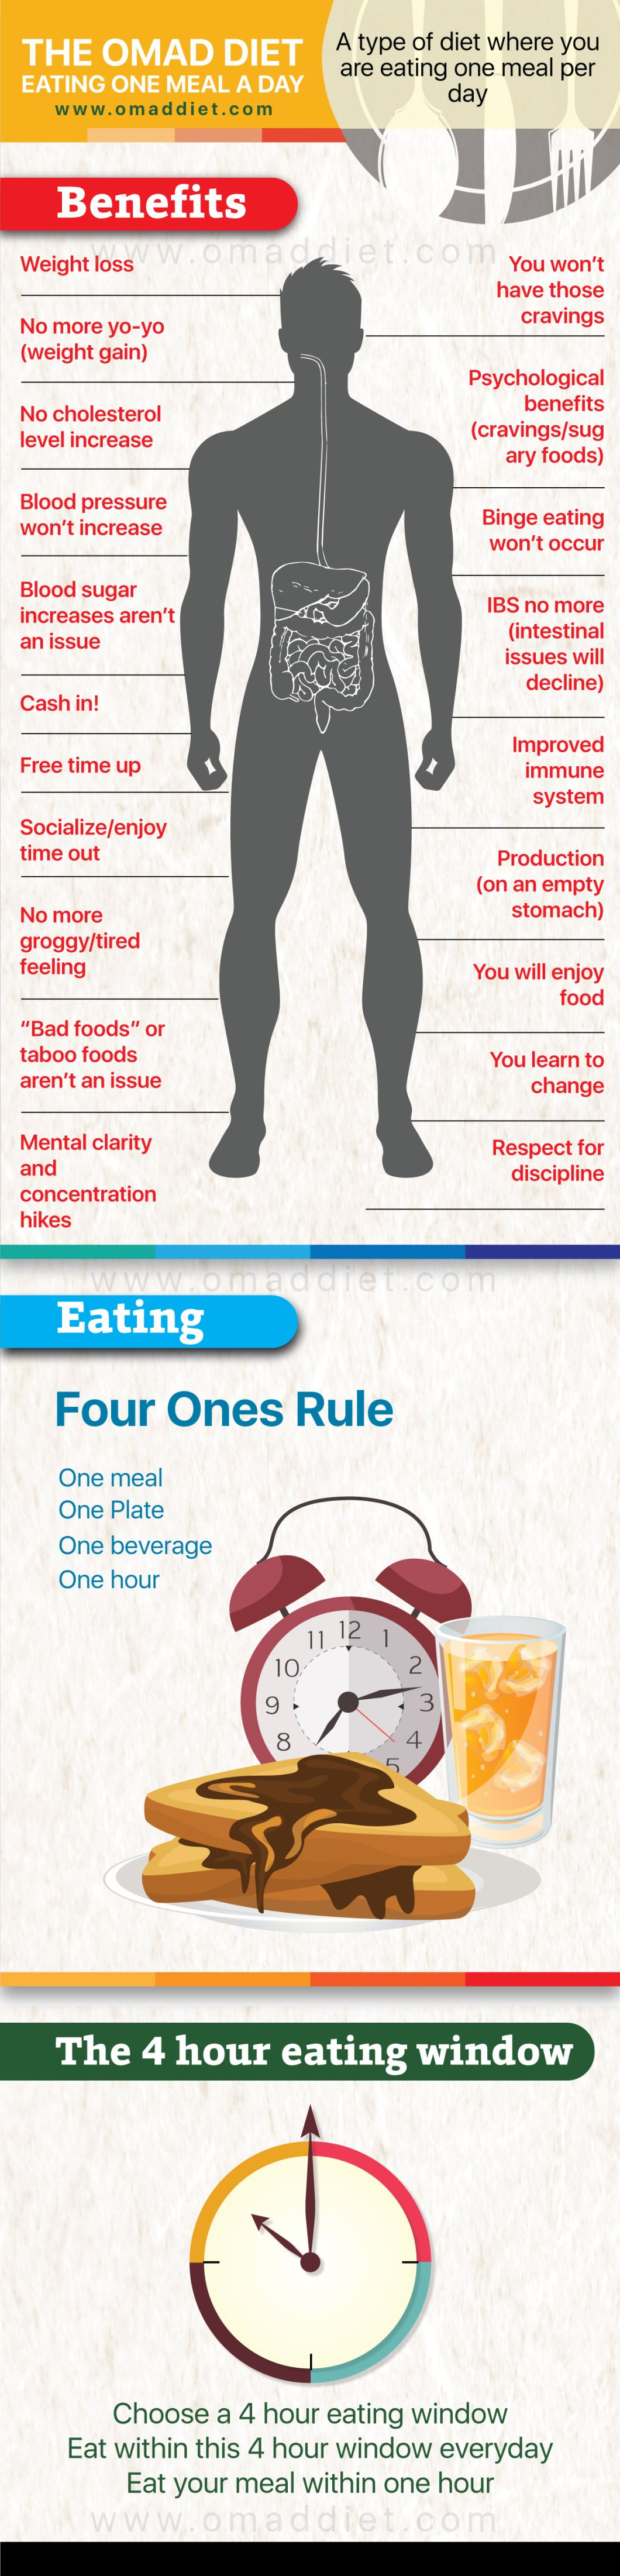 How to Get Healthier by Eating Only One Meal a Day: The OMAD Diet - Infographic